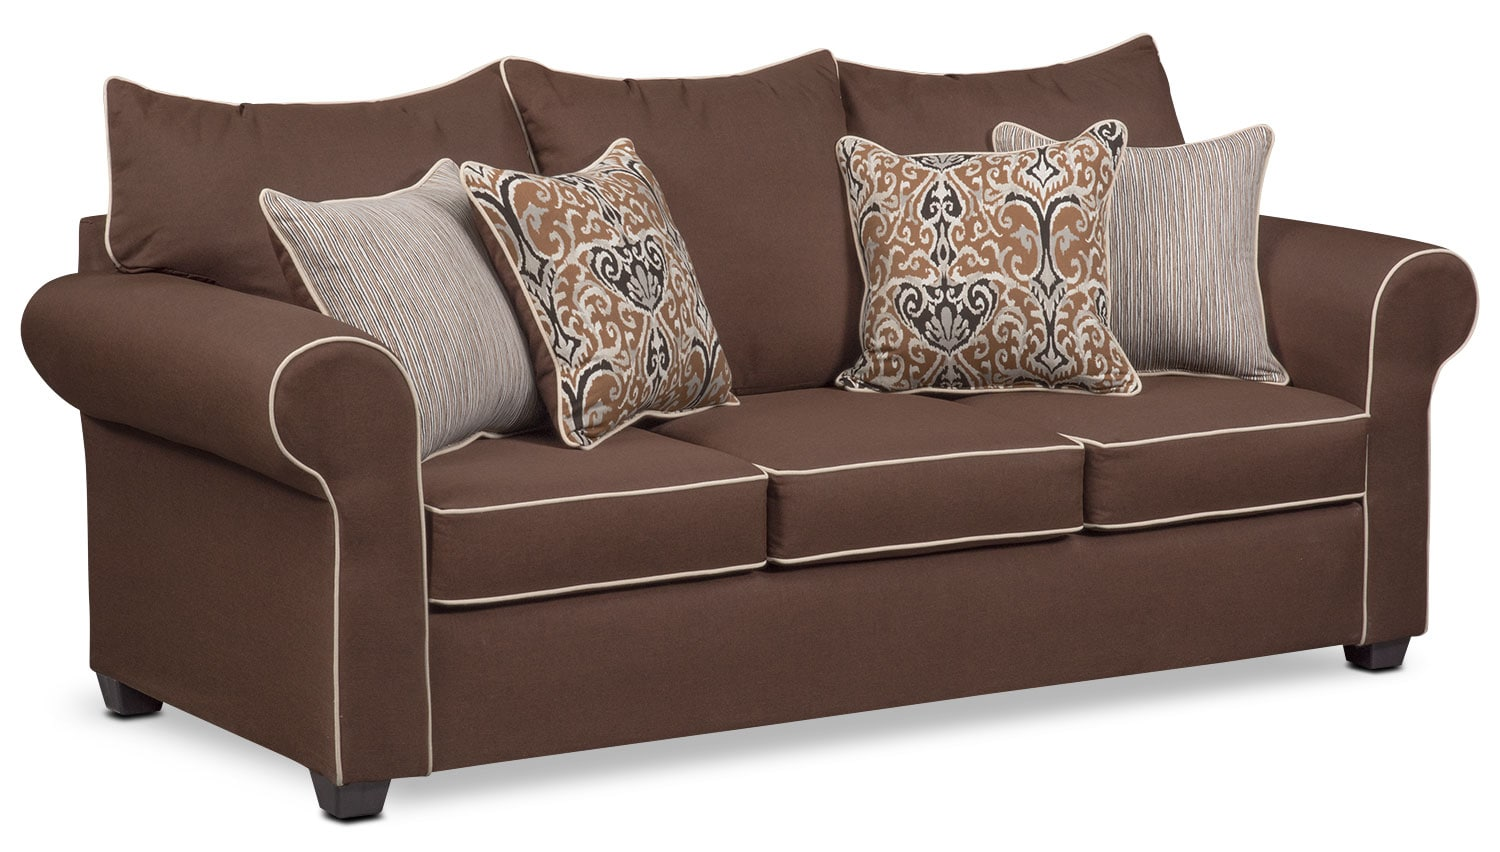 Carla Queen Memory Foam Sleeper Sofa - Chocolate